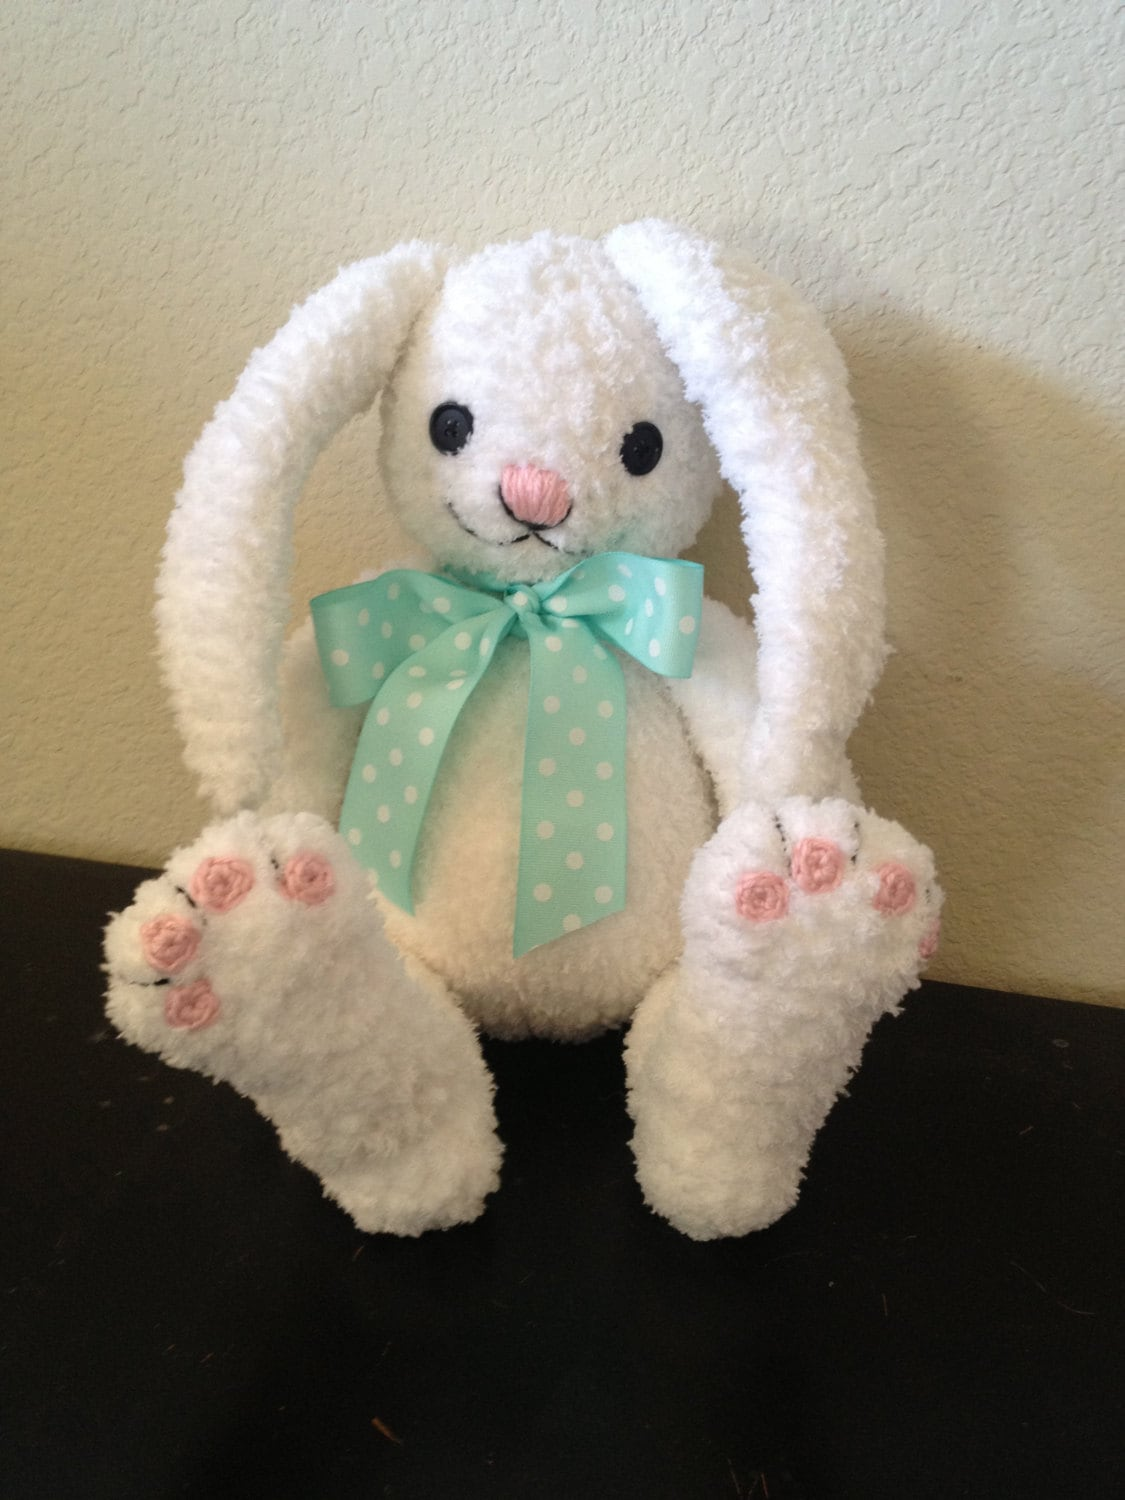 Big Bunny Buddy Crochet doll PATTERN Plush Amigurumi for